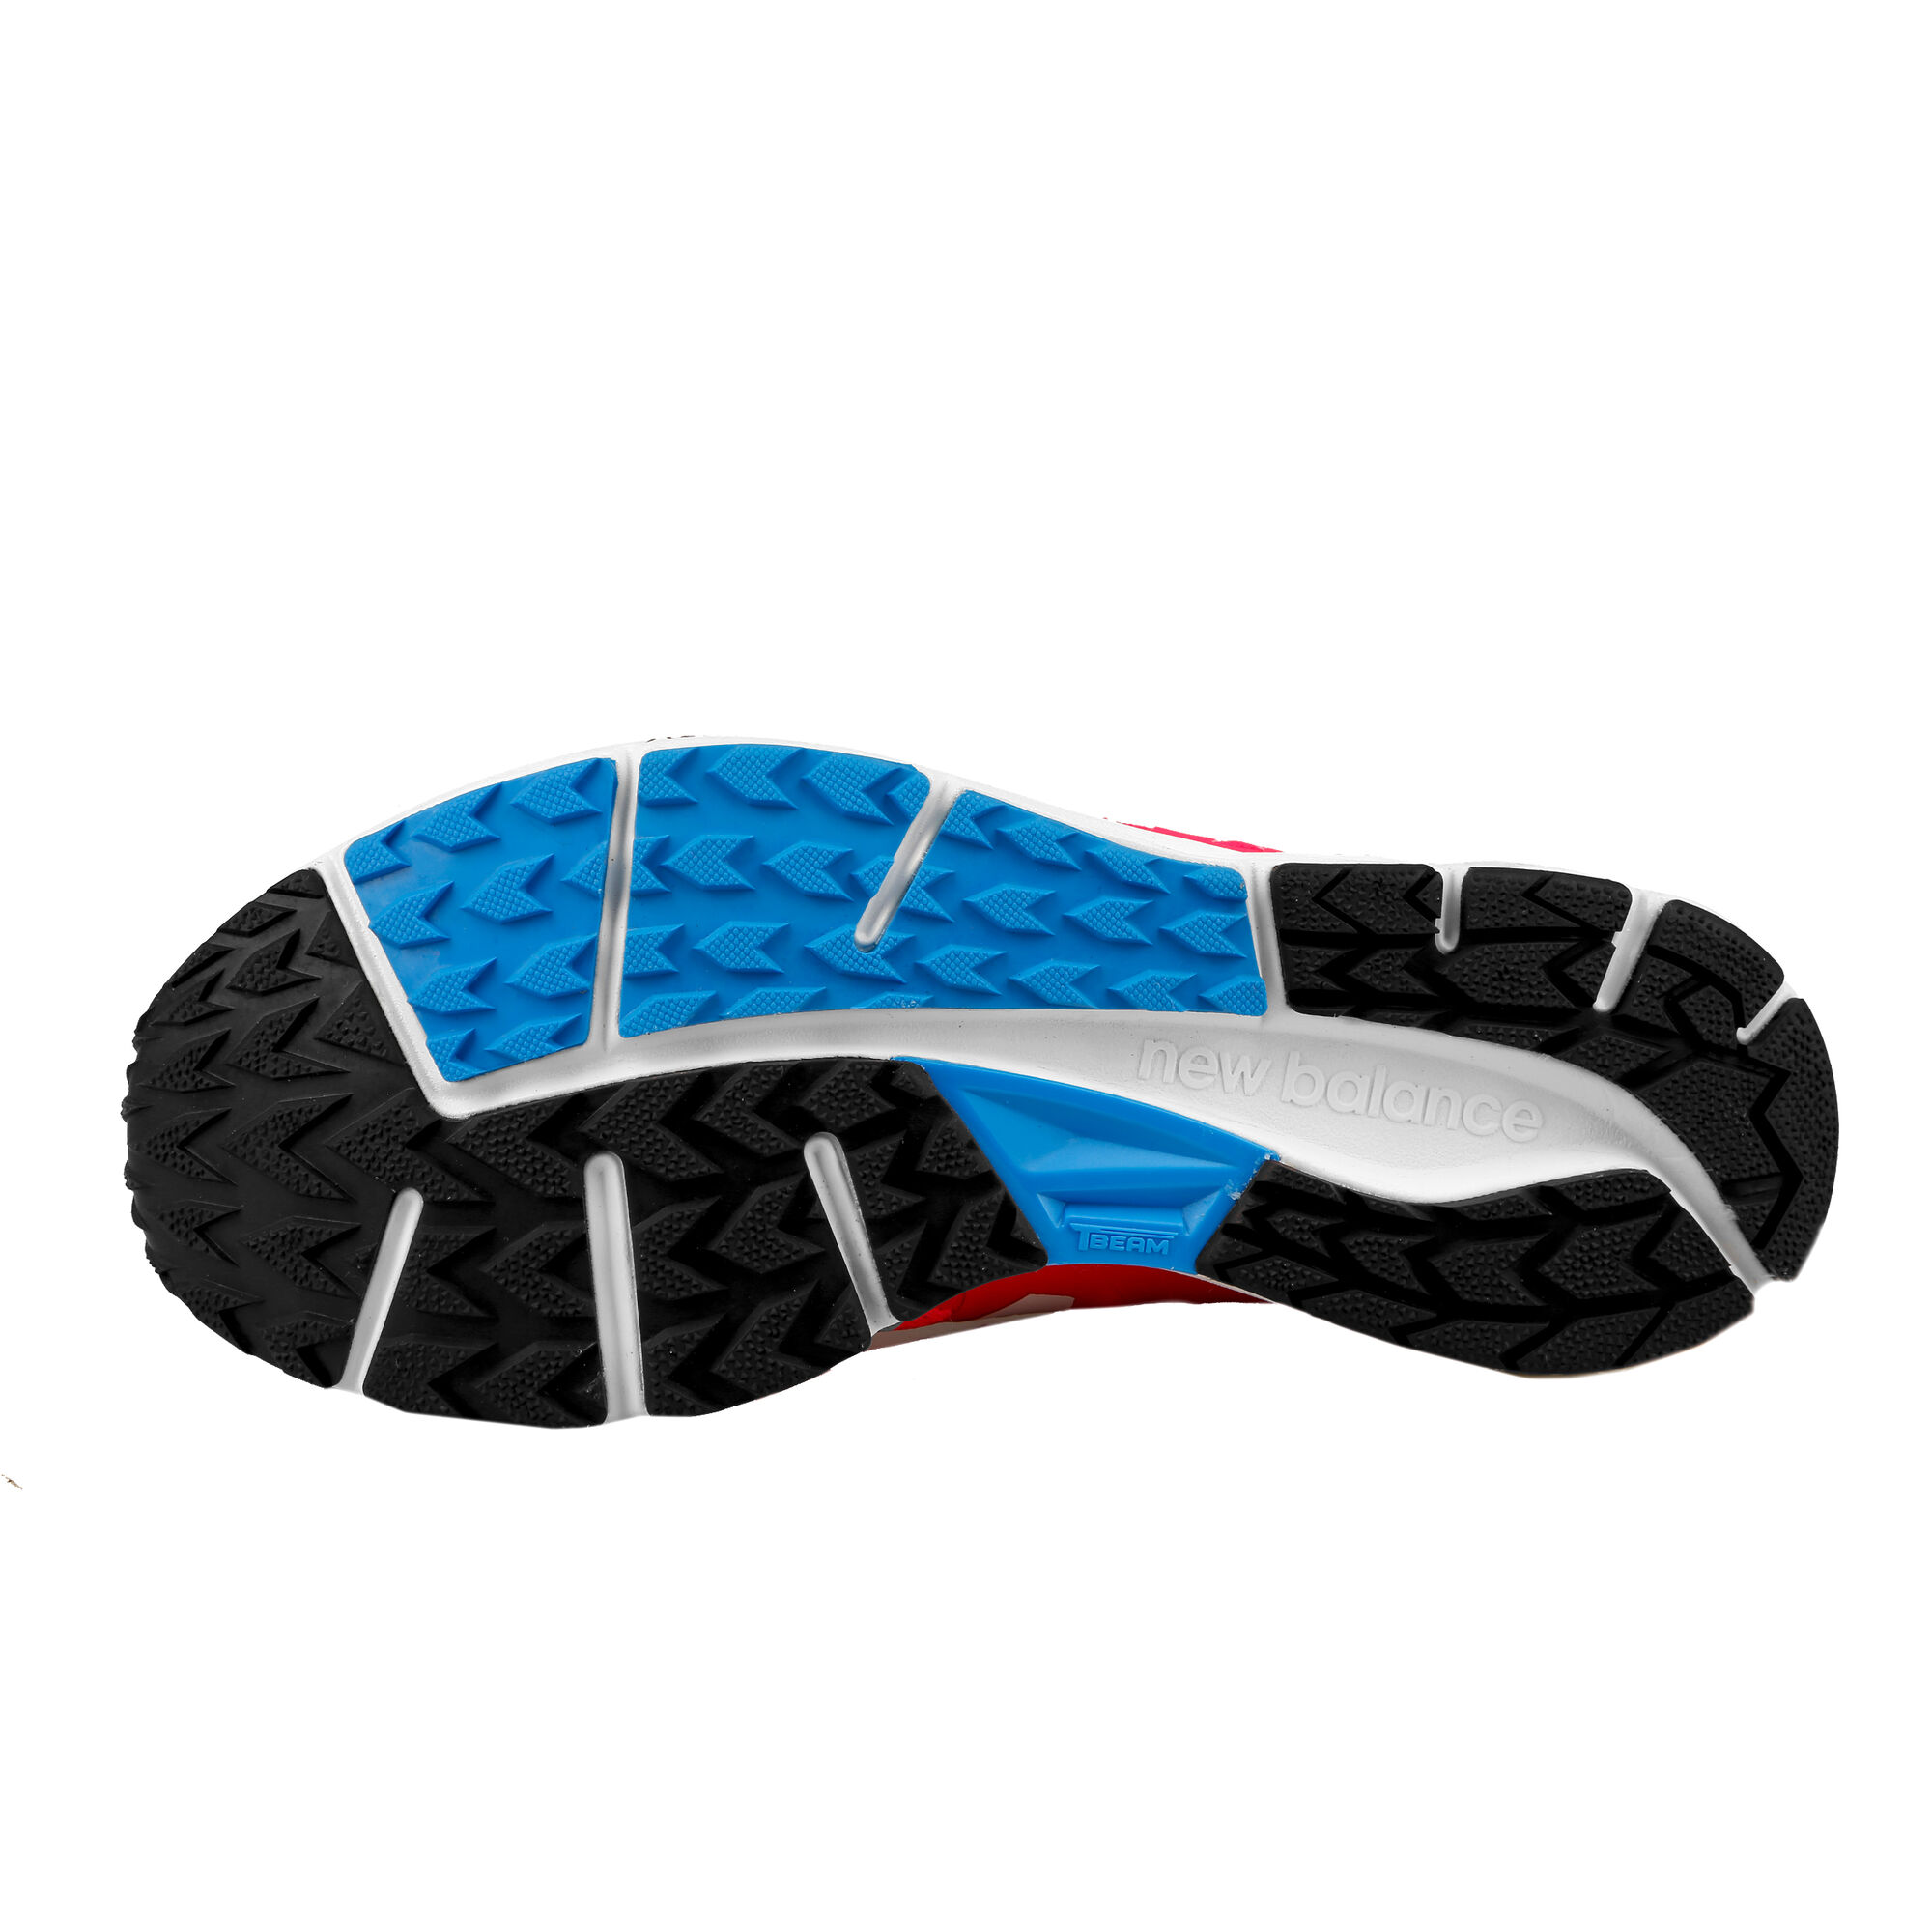 big sale 14580 1f99c buy New Balance NBx Competition 1500 V3 Competition Running ...